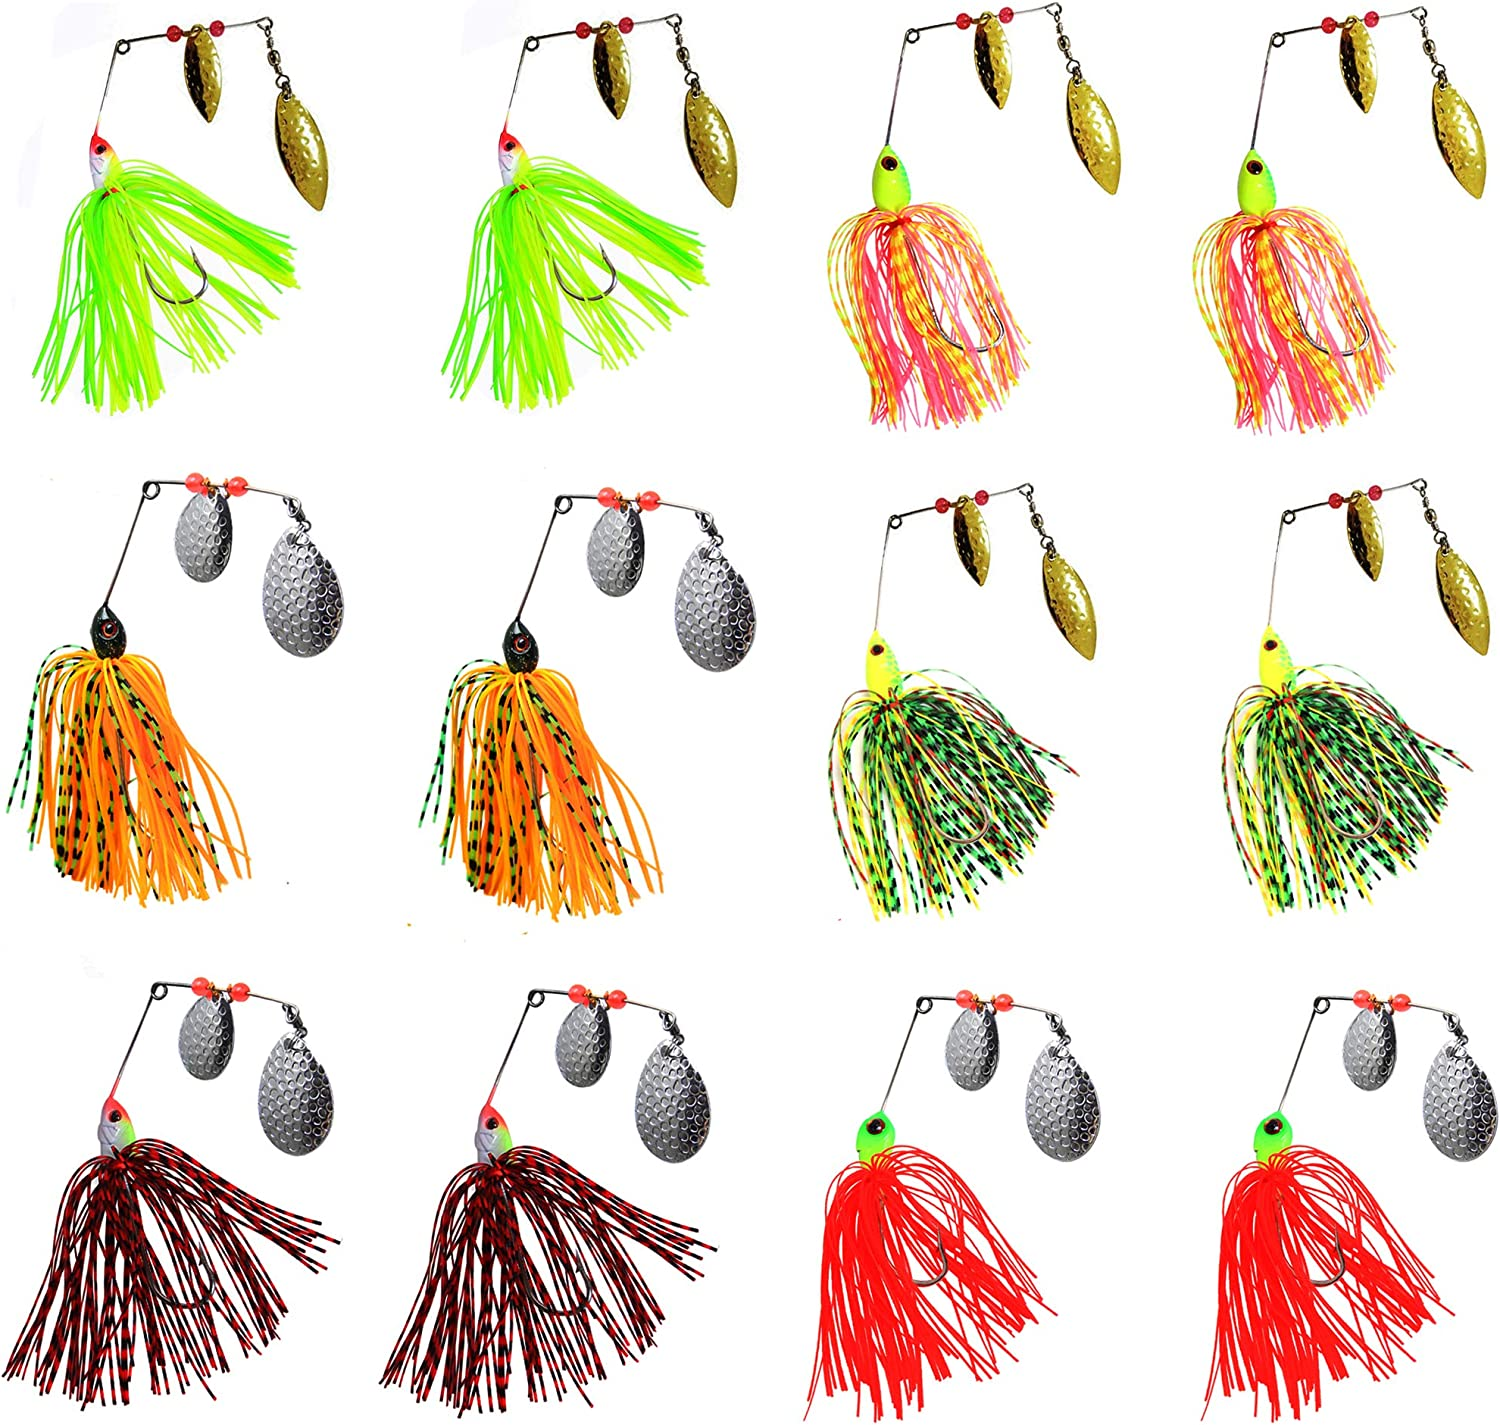 AGOOL Fishing Spinner Baits Lure Kit  Hard Metal Spinner Lures Multicolor Jig Lures Buzzbait Swimbaits for Pike Bass Trout Salmon Freshwater Saltwater Fishing 6pcs 12pcs